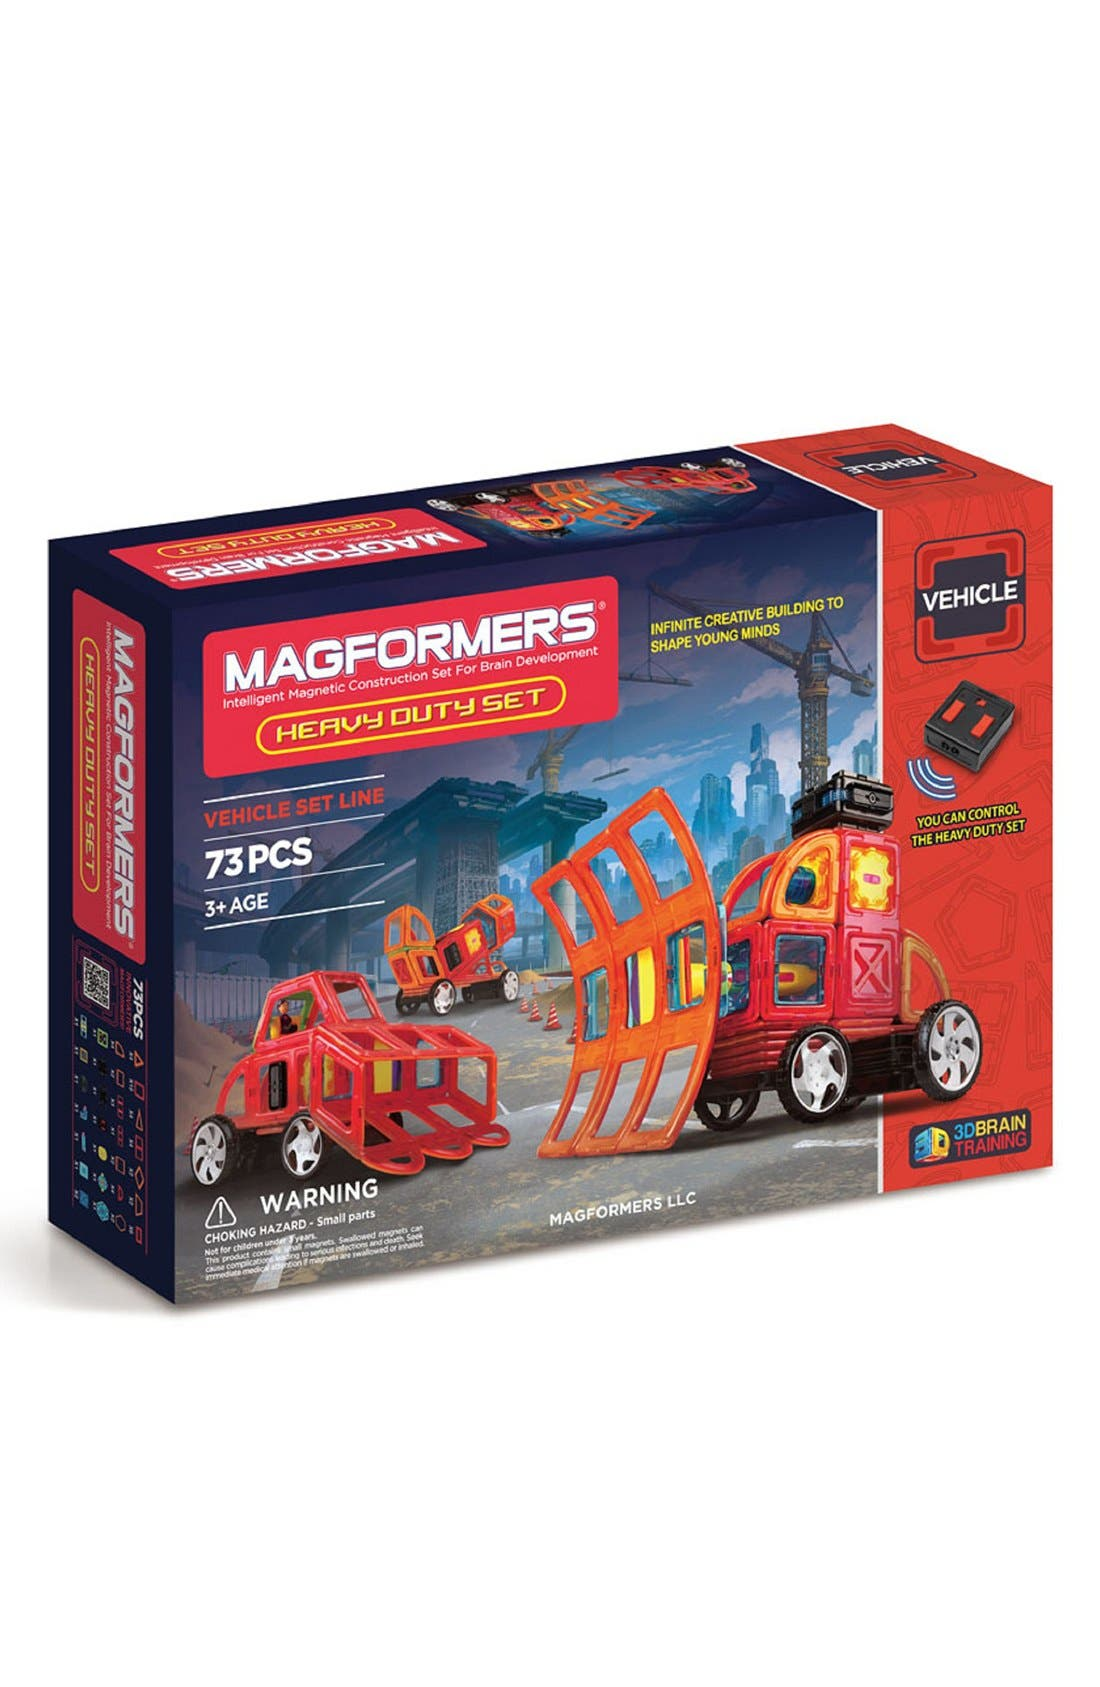 MAGFORMERS 'Heavy Duty' Magnetic Remote Control Vehicle